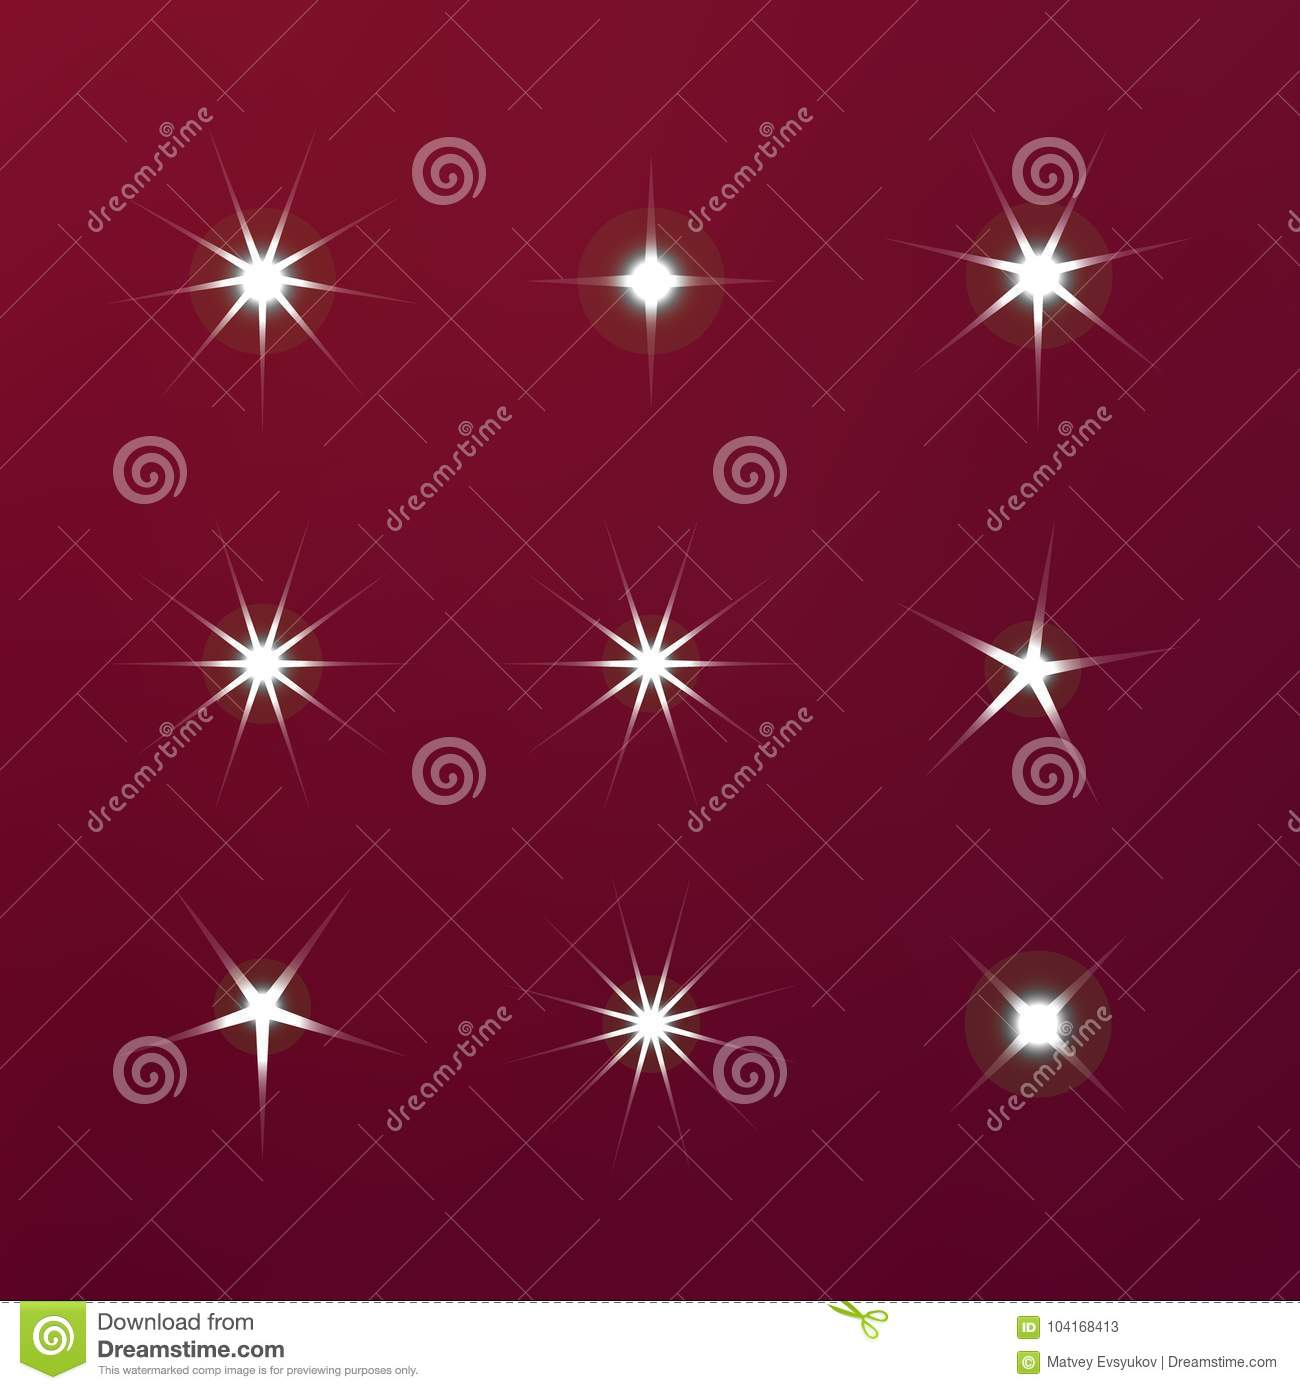 40230e1630 Bright firework decoration twinkle shiny flash sparkle lights vector image  jpg 1300x1390 Shiny flash